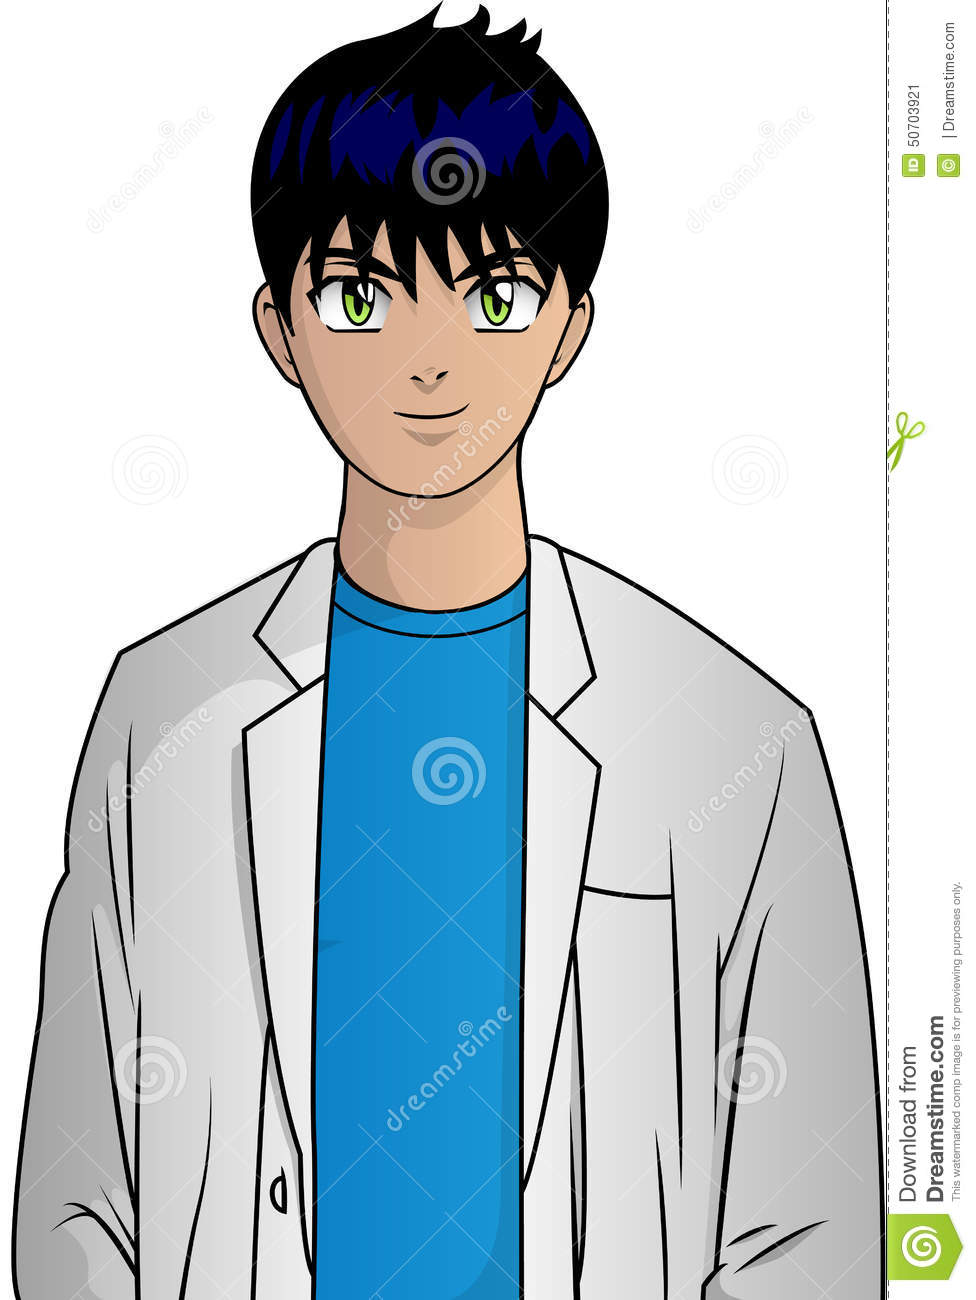 Anime Characters Vector : Anime doctor stock vector image